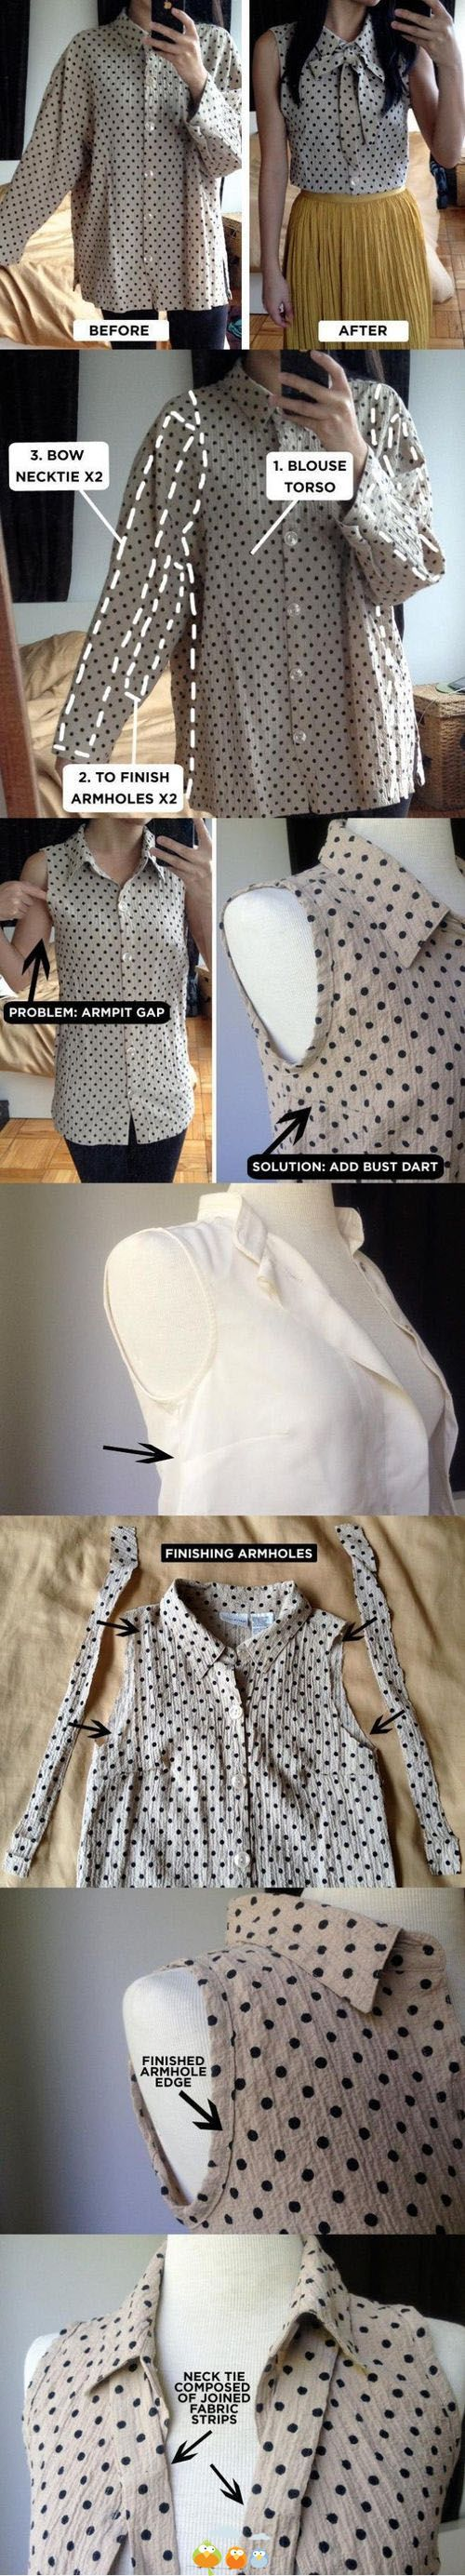 Blouse Tranformation: